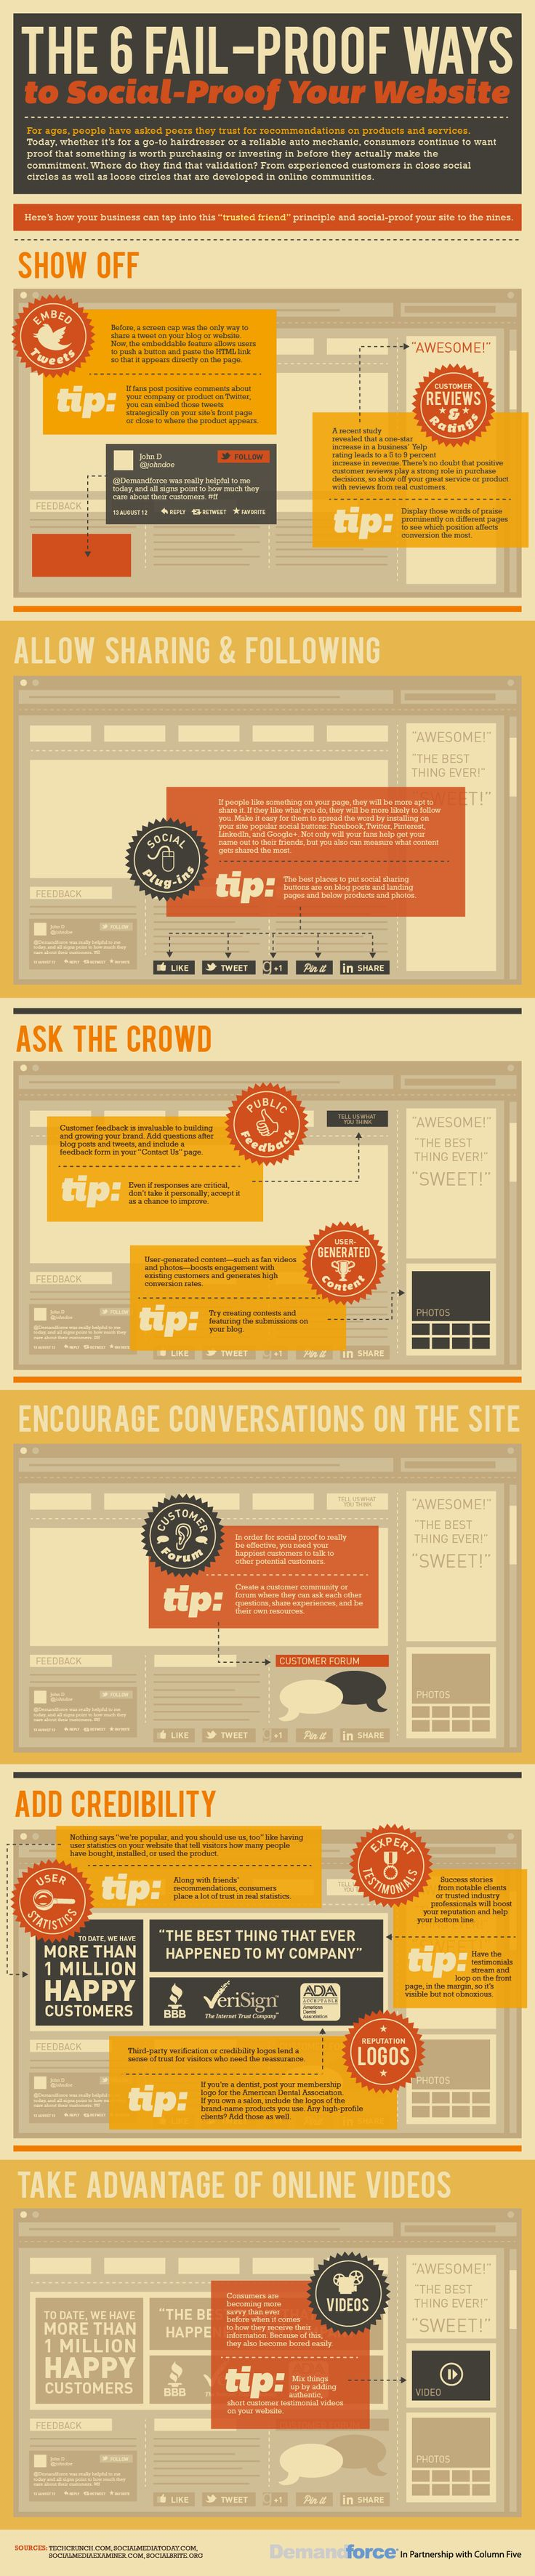 Social Proof Website Tips Which Change Everything [Infographic] dfwsocialmediamarketing.org / #DFWSM